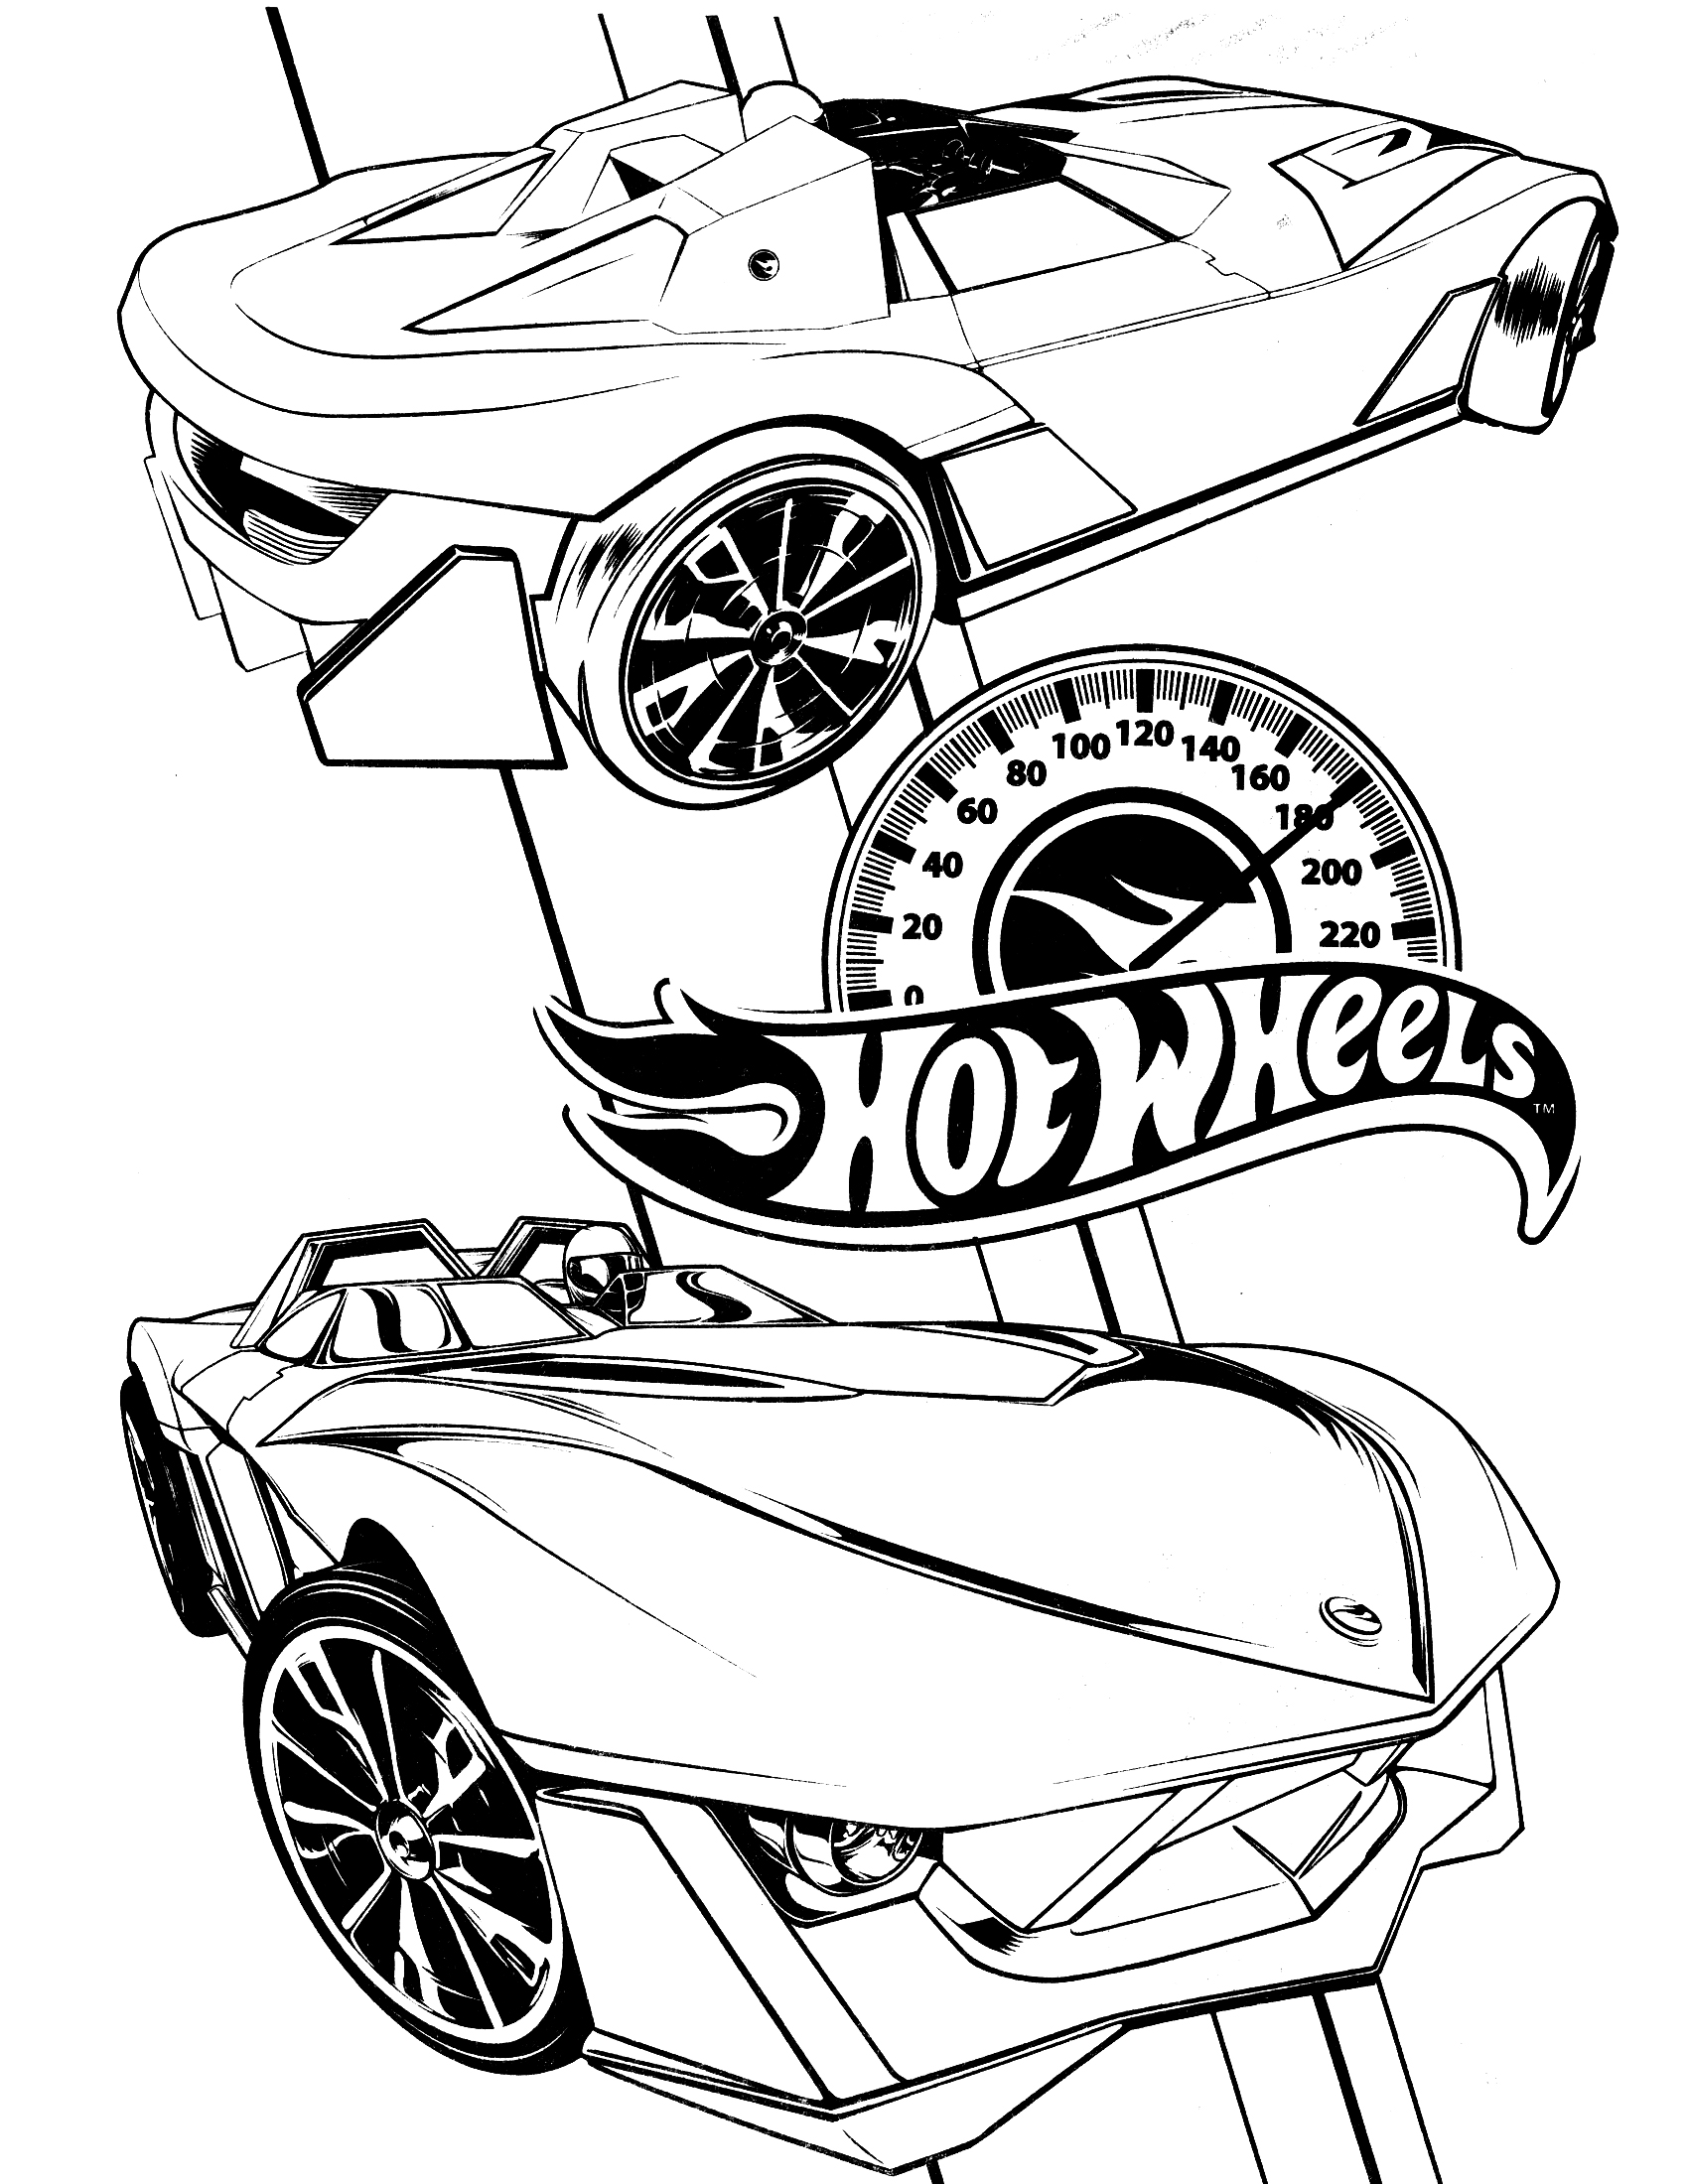 hotwheels coloring pages free printable hot wheels coloring pages for kids hotwheels pages coloring